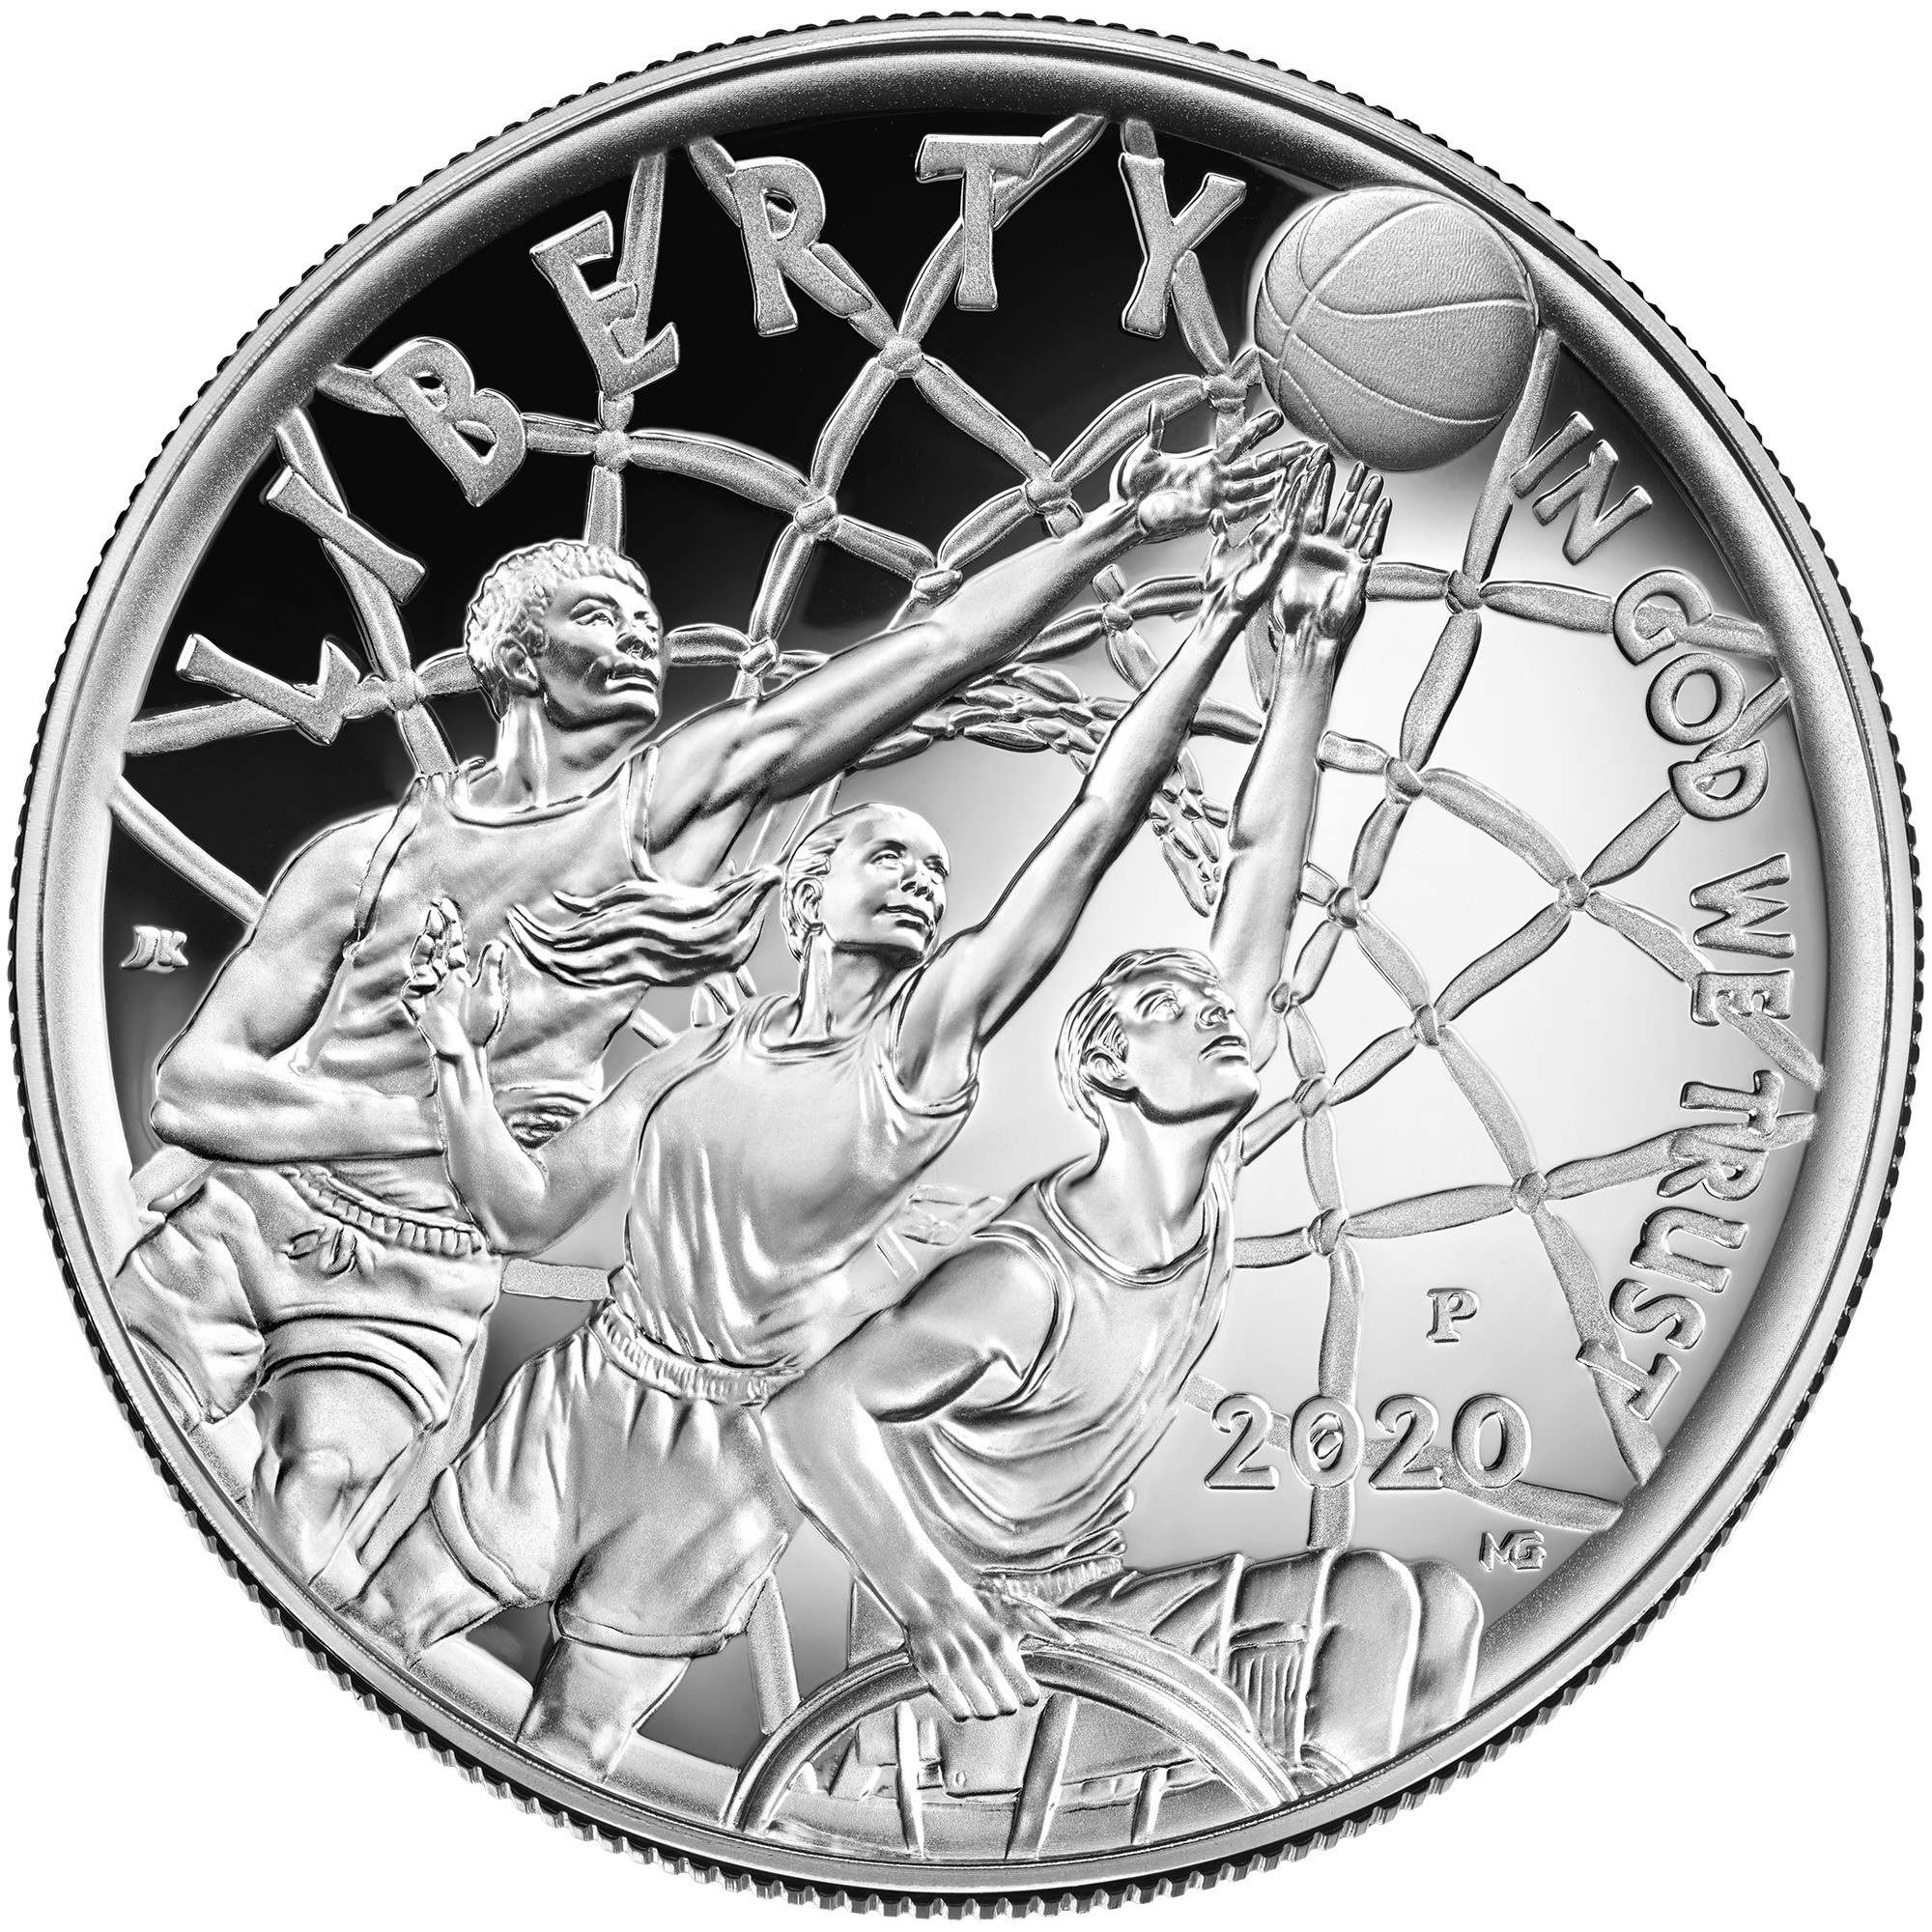 2020 Basketball Hall of Fame Commemorative Proof Obverse